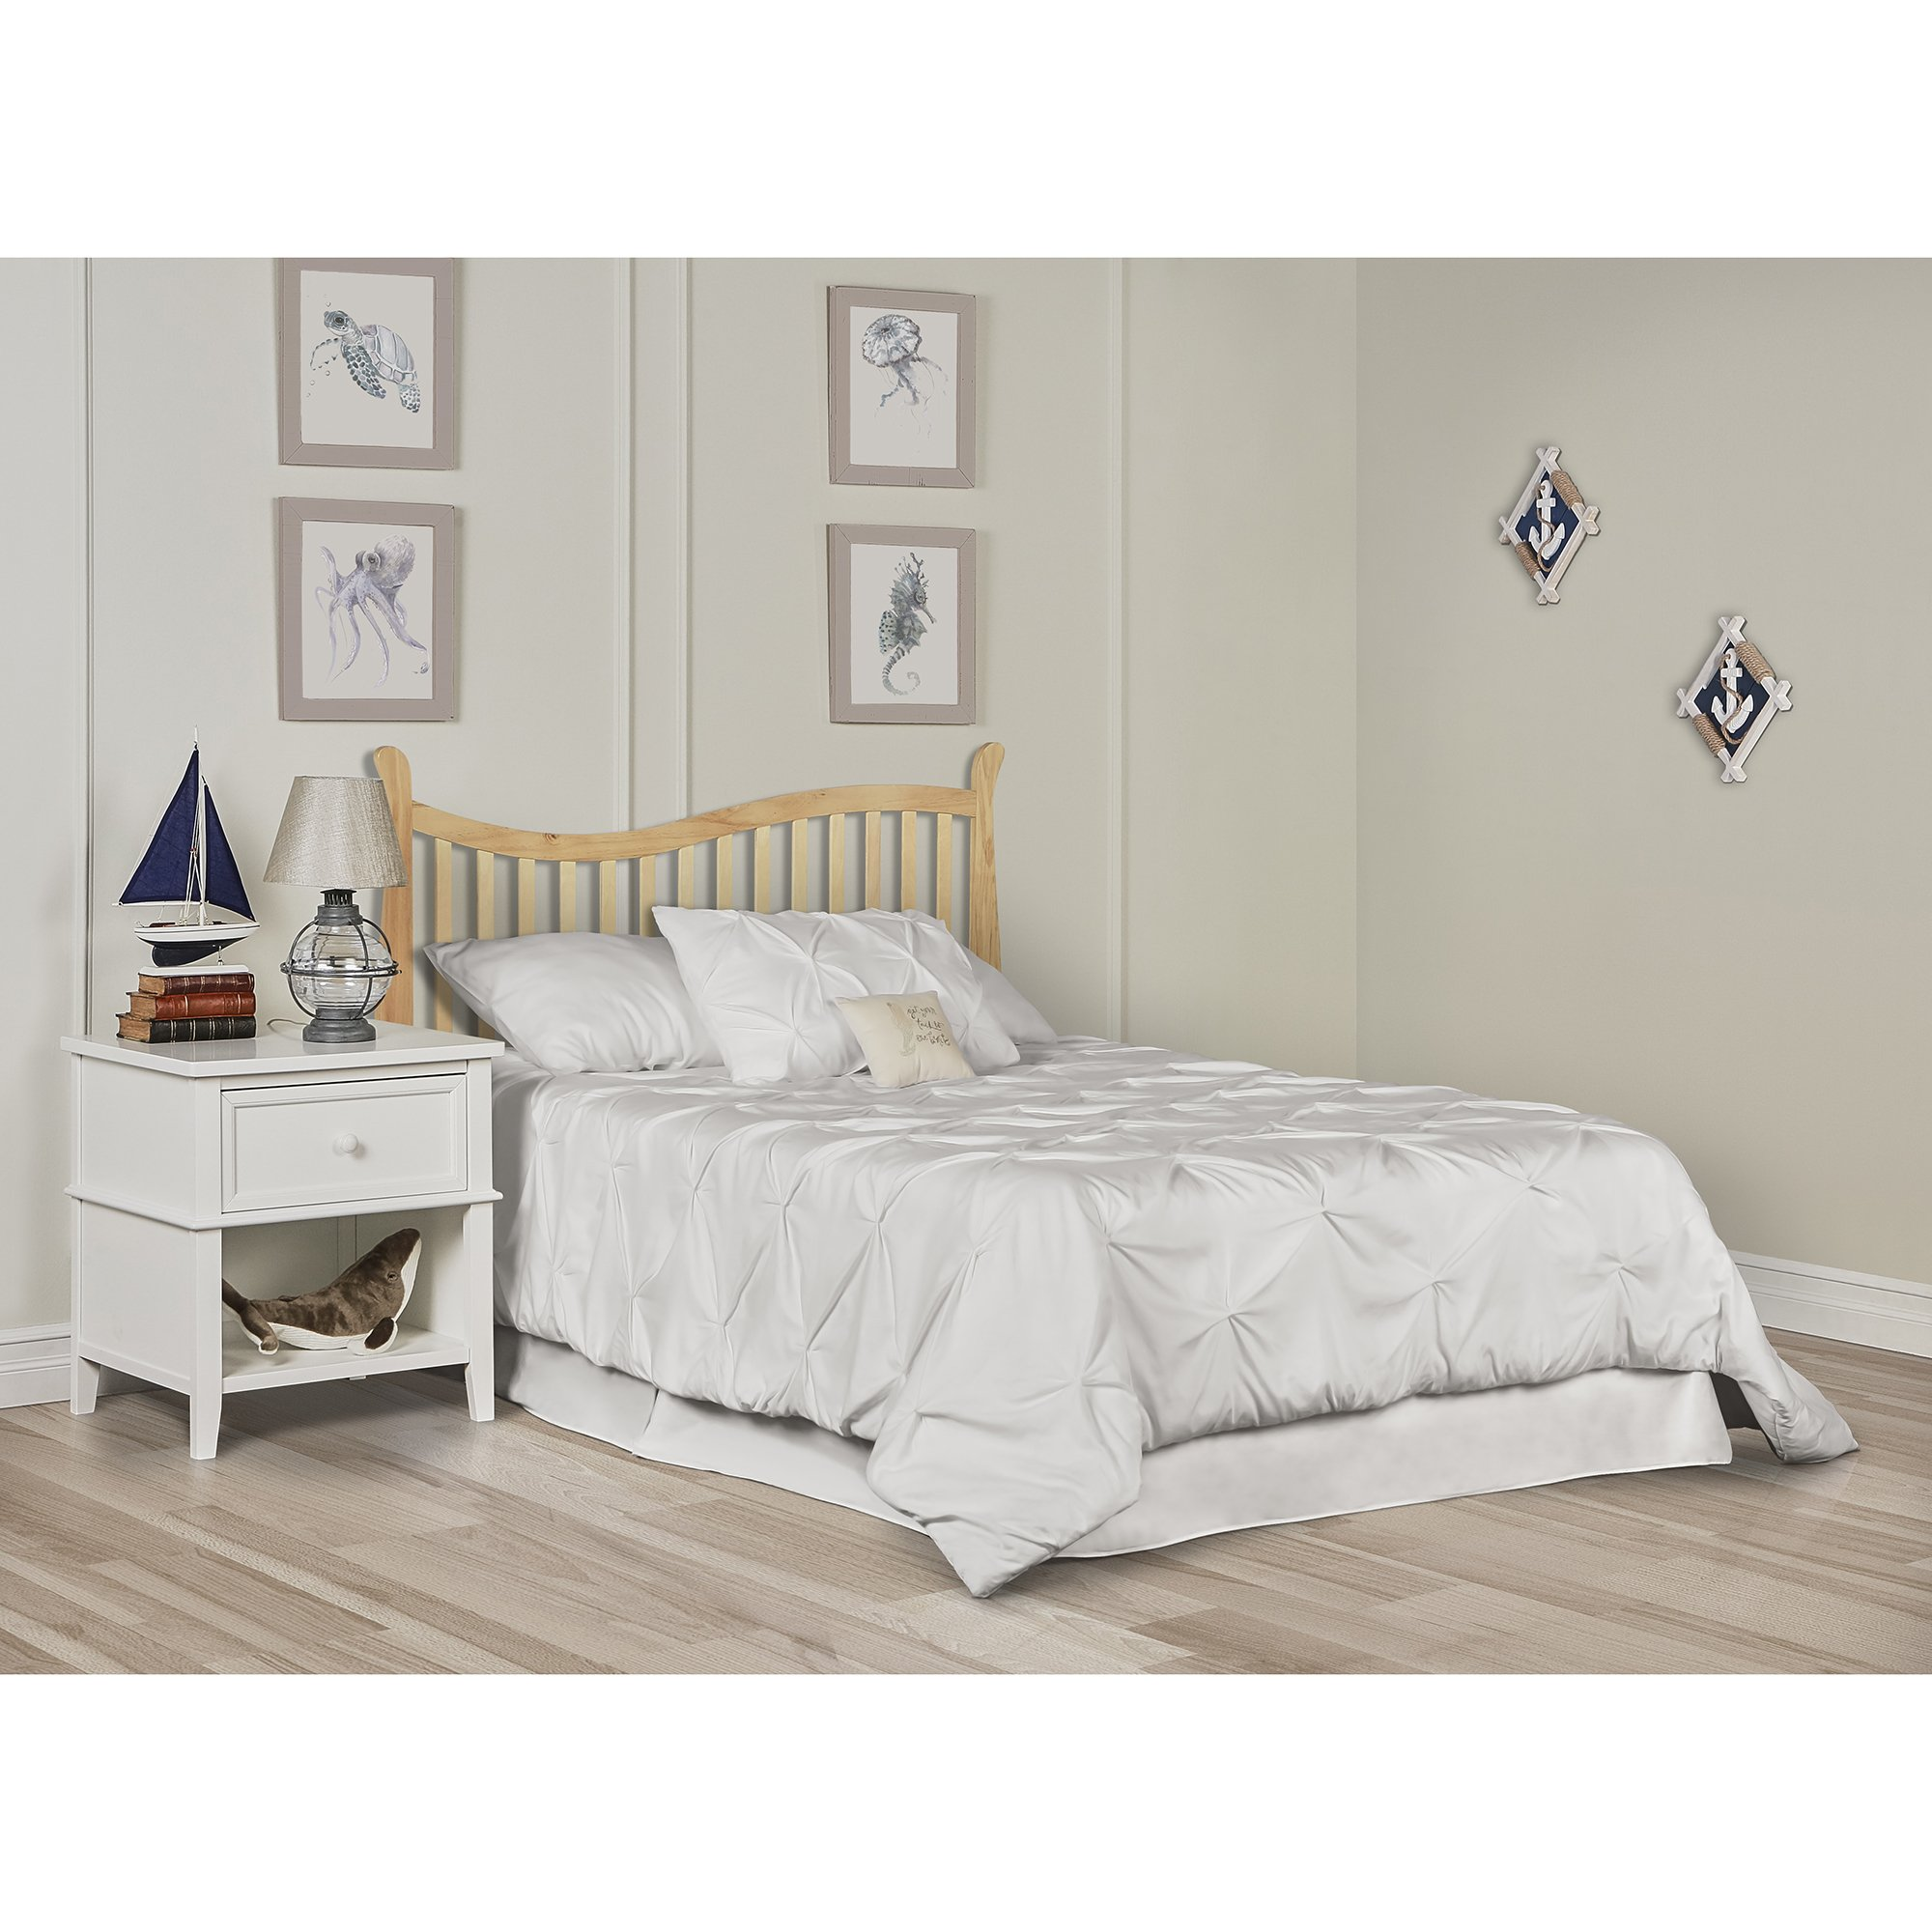 Dream On Me Violet 7 in 1 Convertible Life Style Crib, Natural by Dream On Me (Image #7)